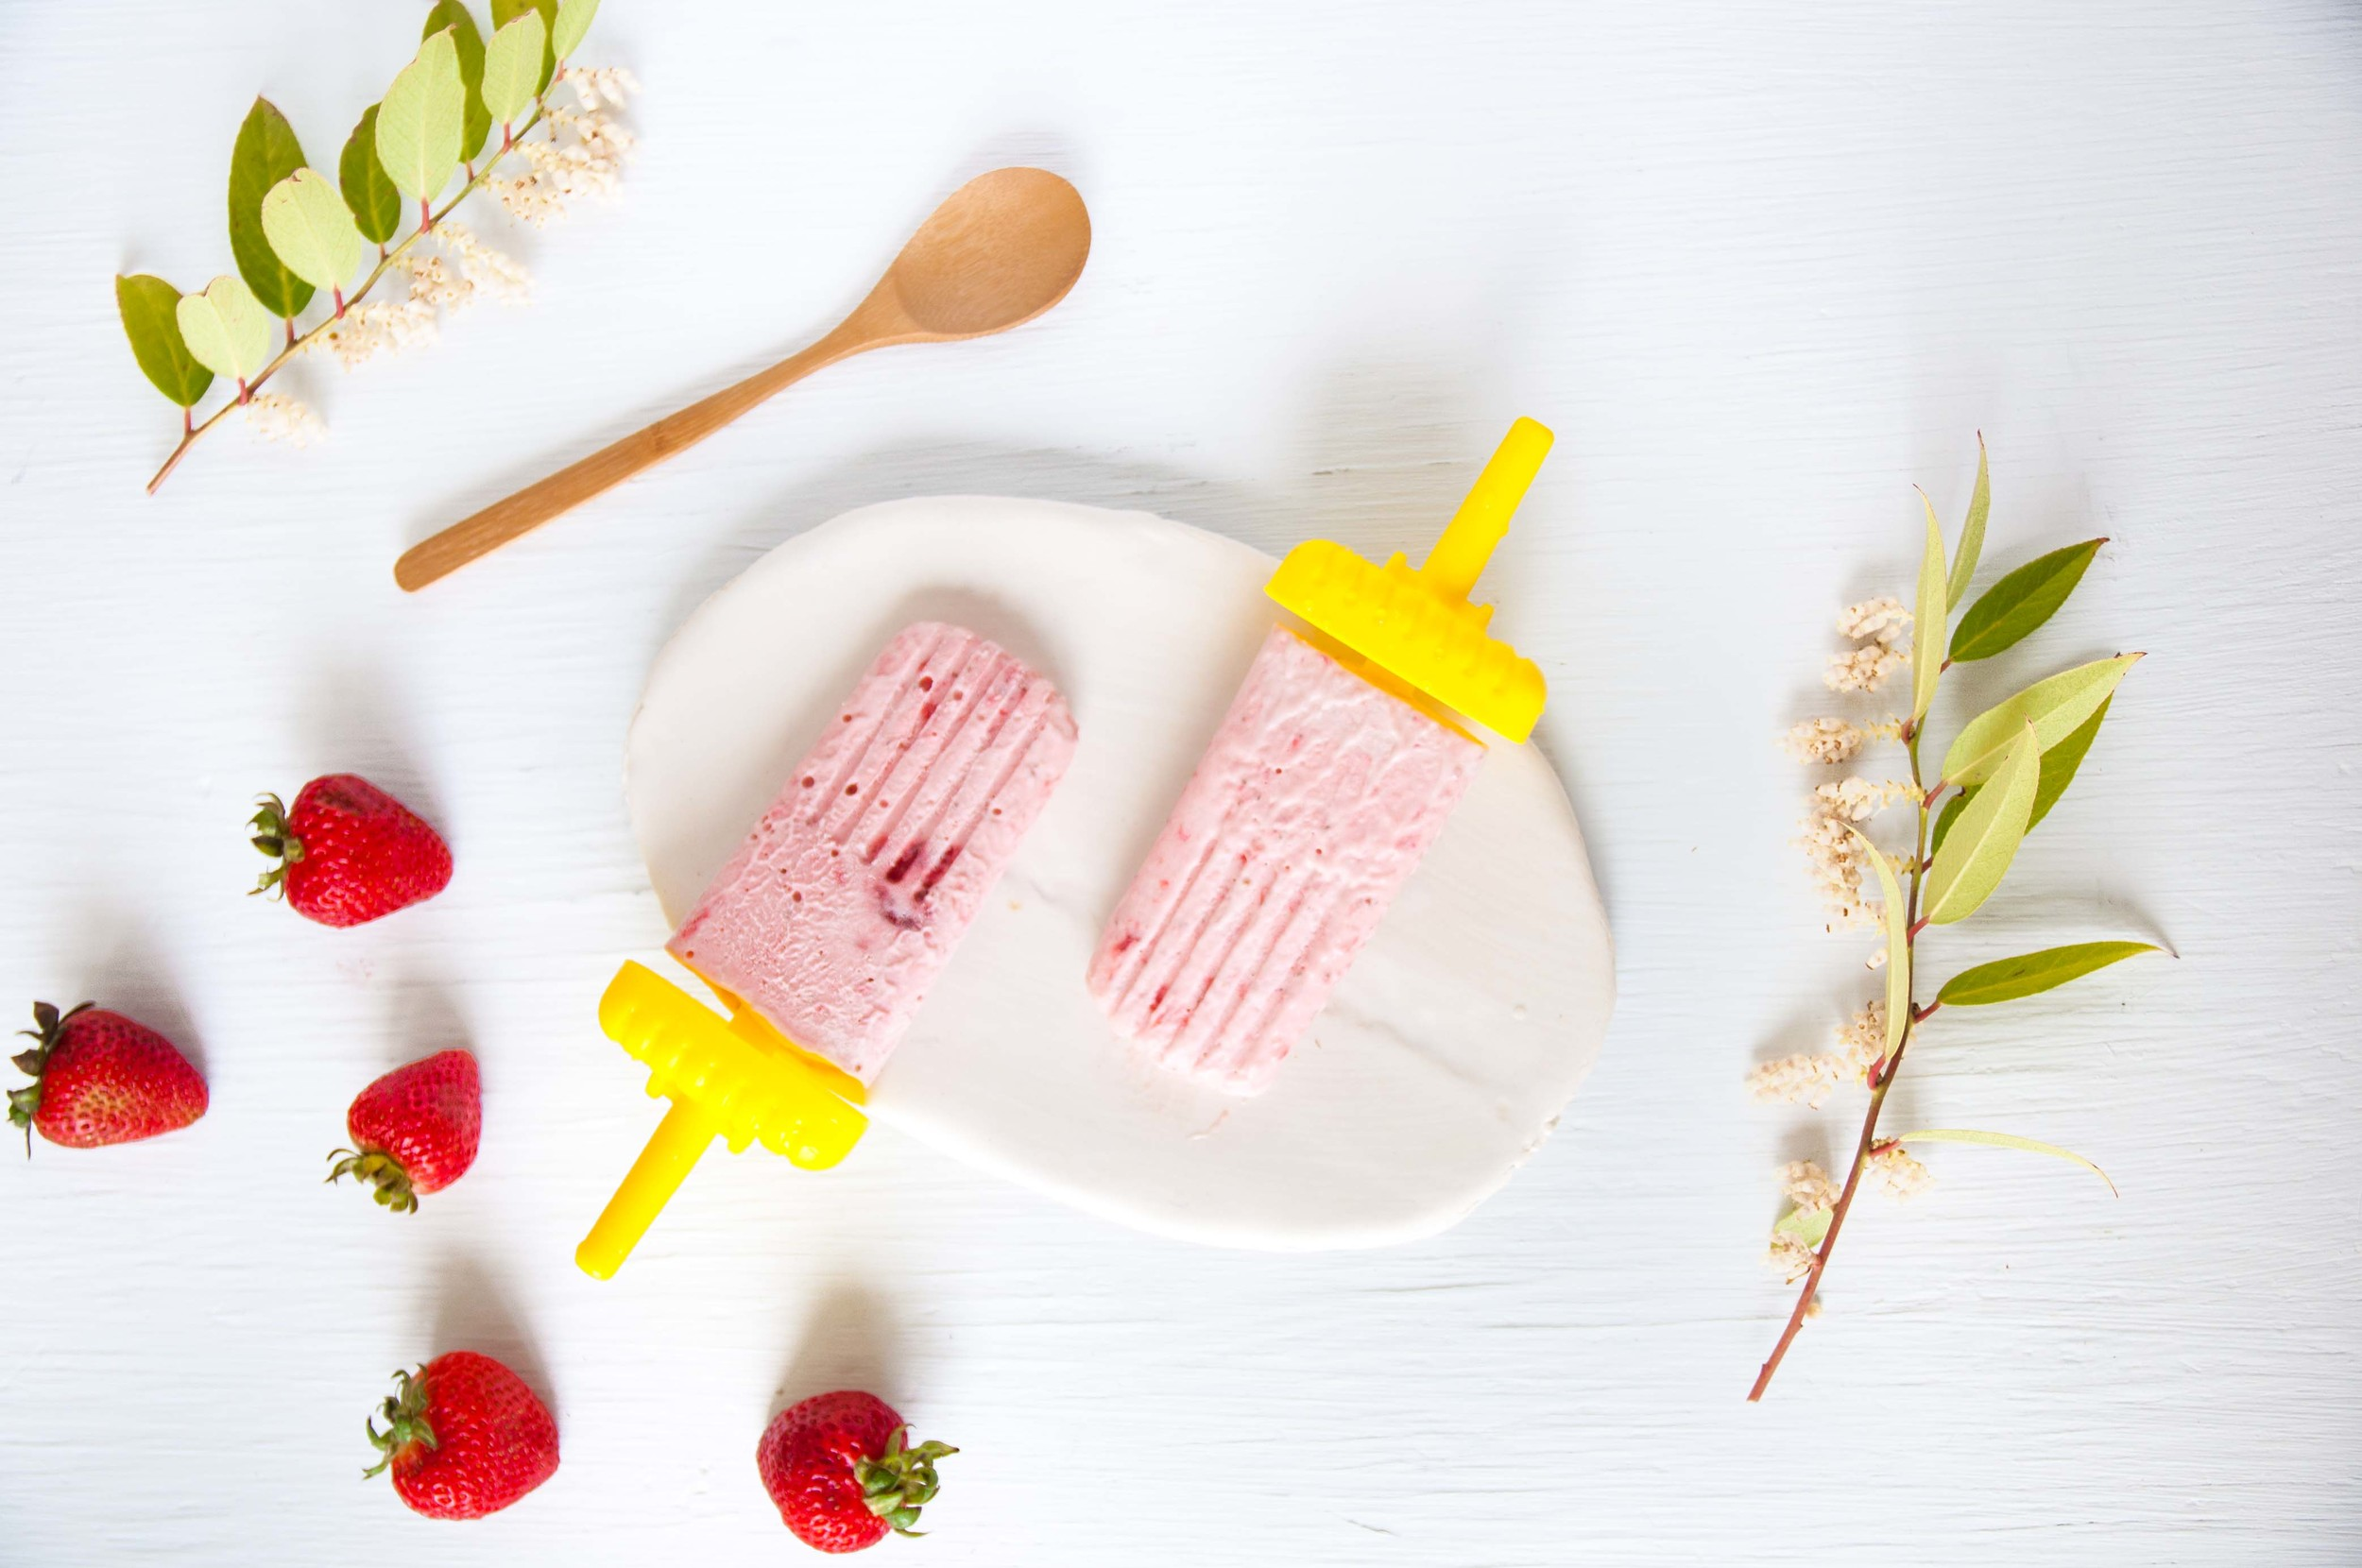 strawberry-coconut-vegan-creamsicle-fried-parsley